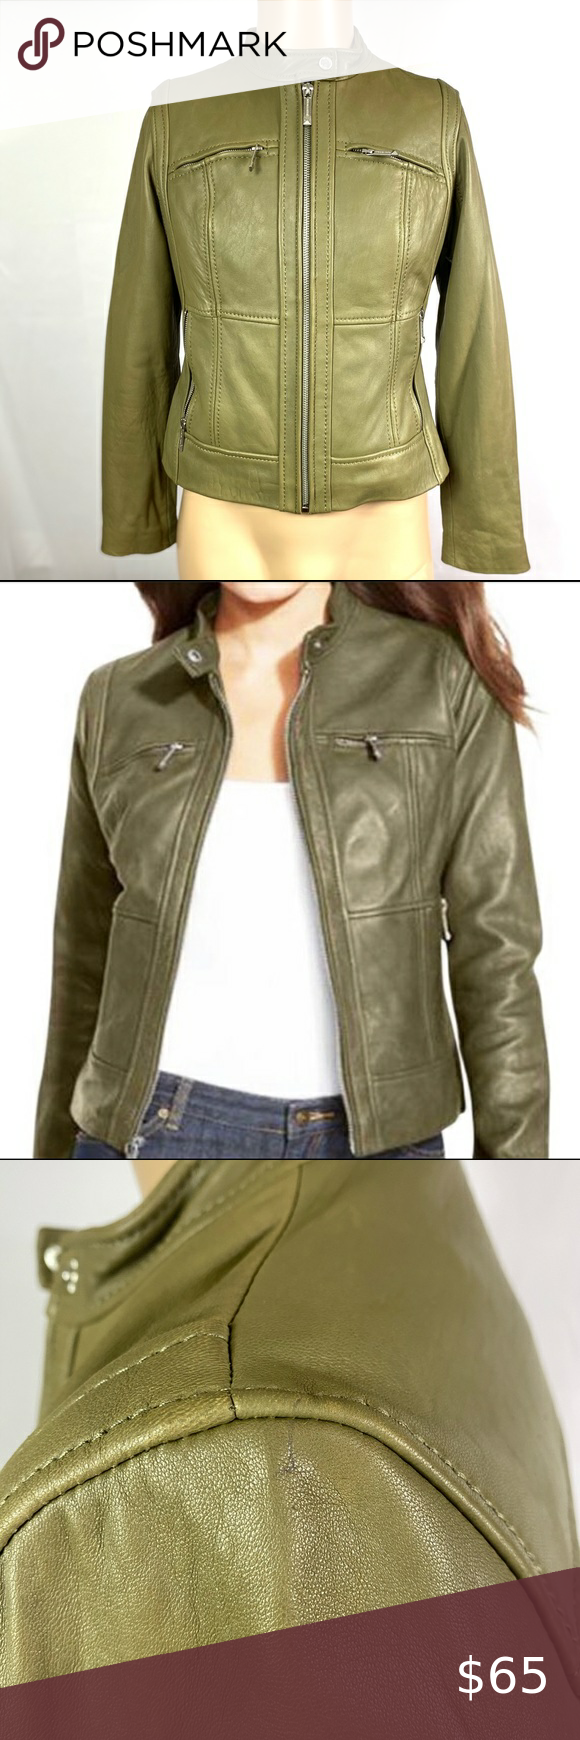 Michael Kors Olive Green Leather Jacket Gently Used Has A Small Pen Mark On The Shoulder Pleas Green Leather Jackets Olive Green Leather Jacket Leather Jacket [ 1740 x 580 Pixel ]